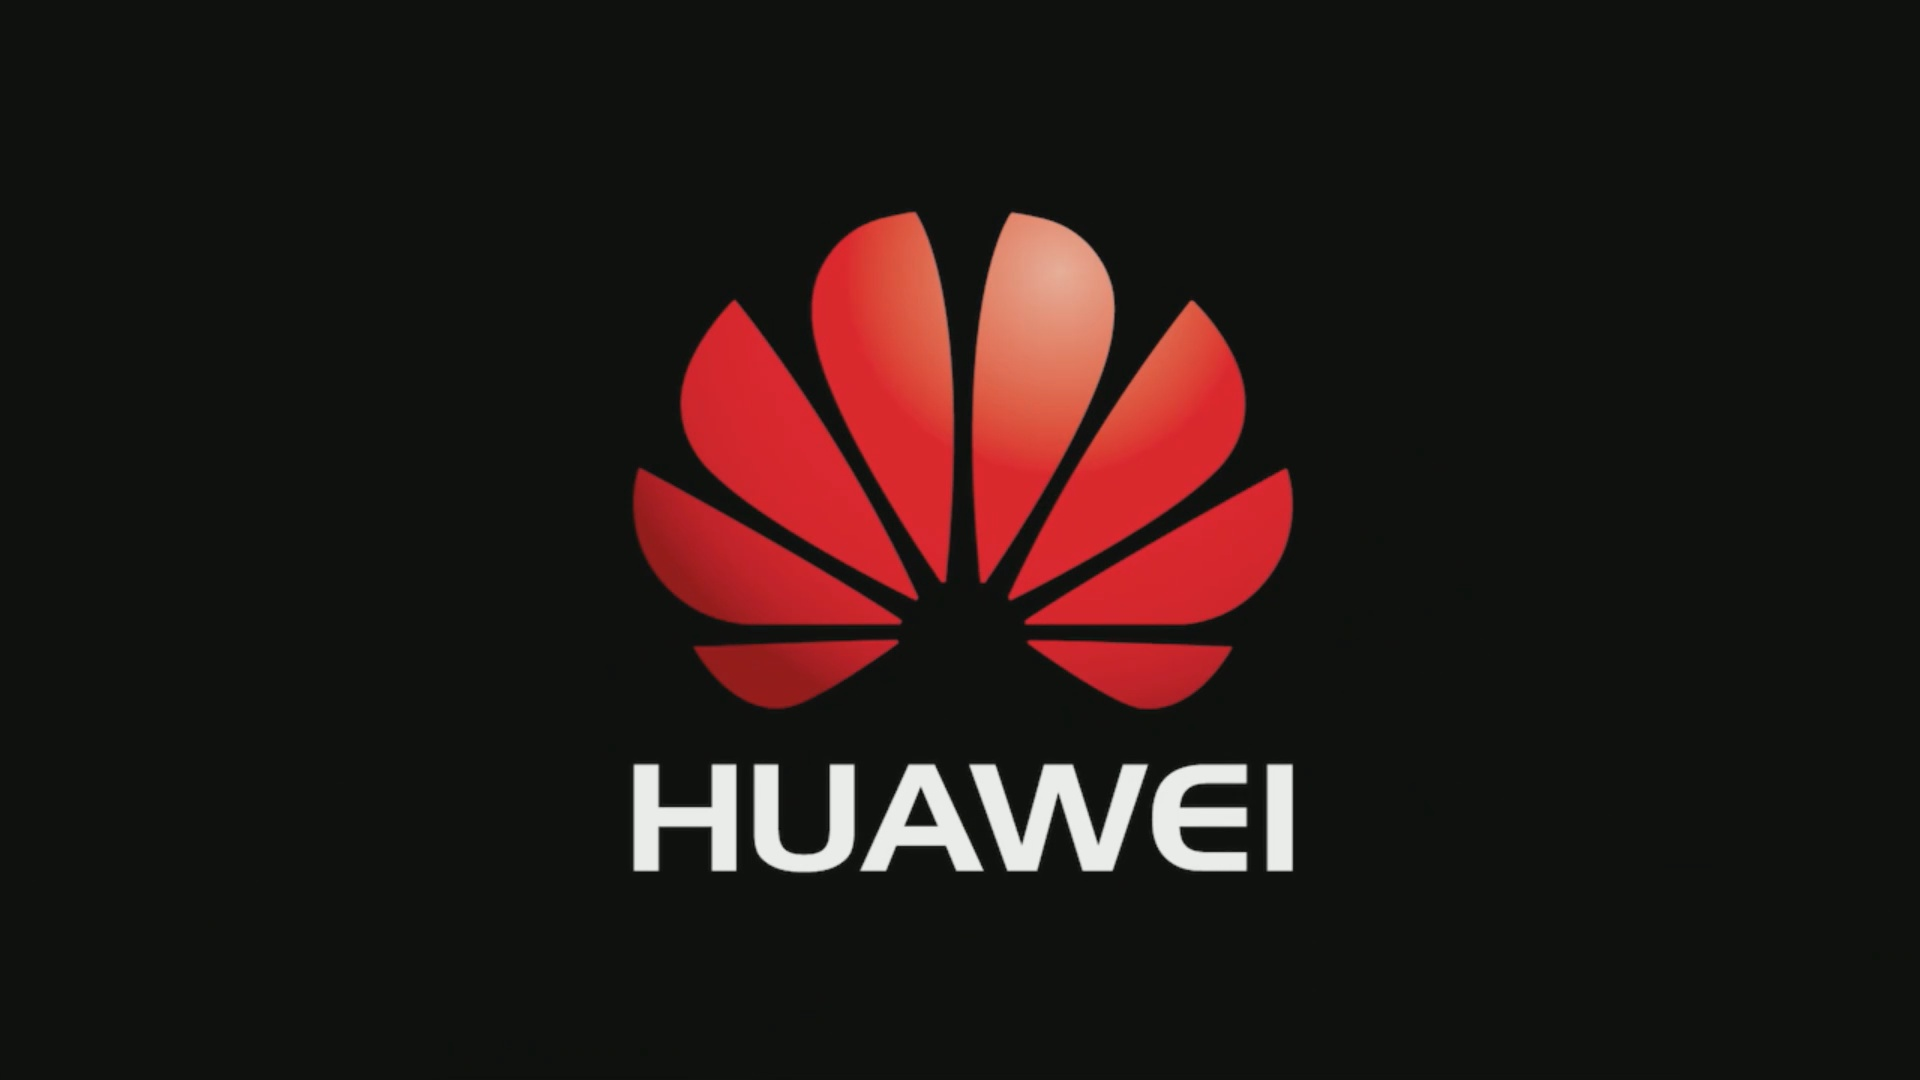 Fixed - Sound Not Works on Huawei U8350 Boulder